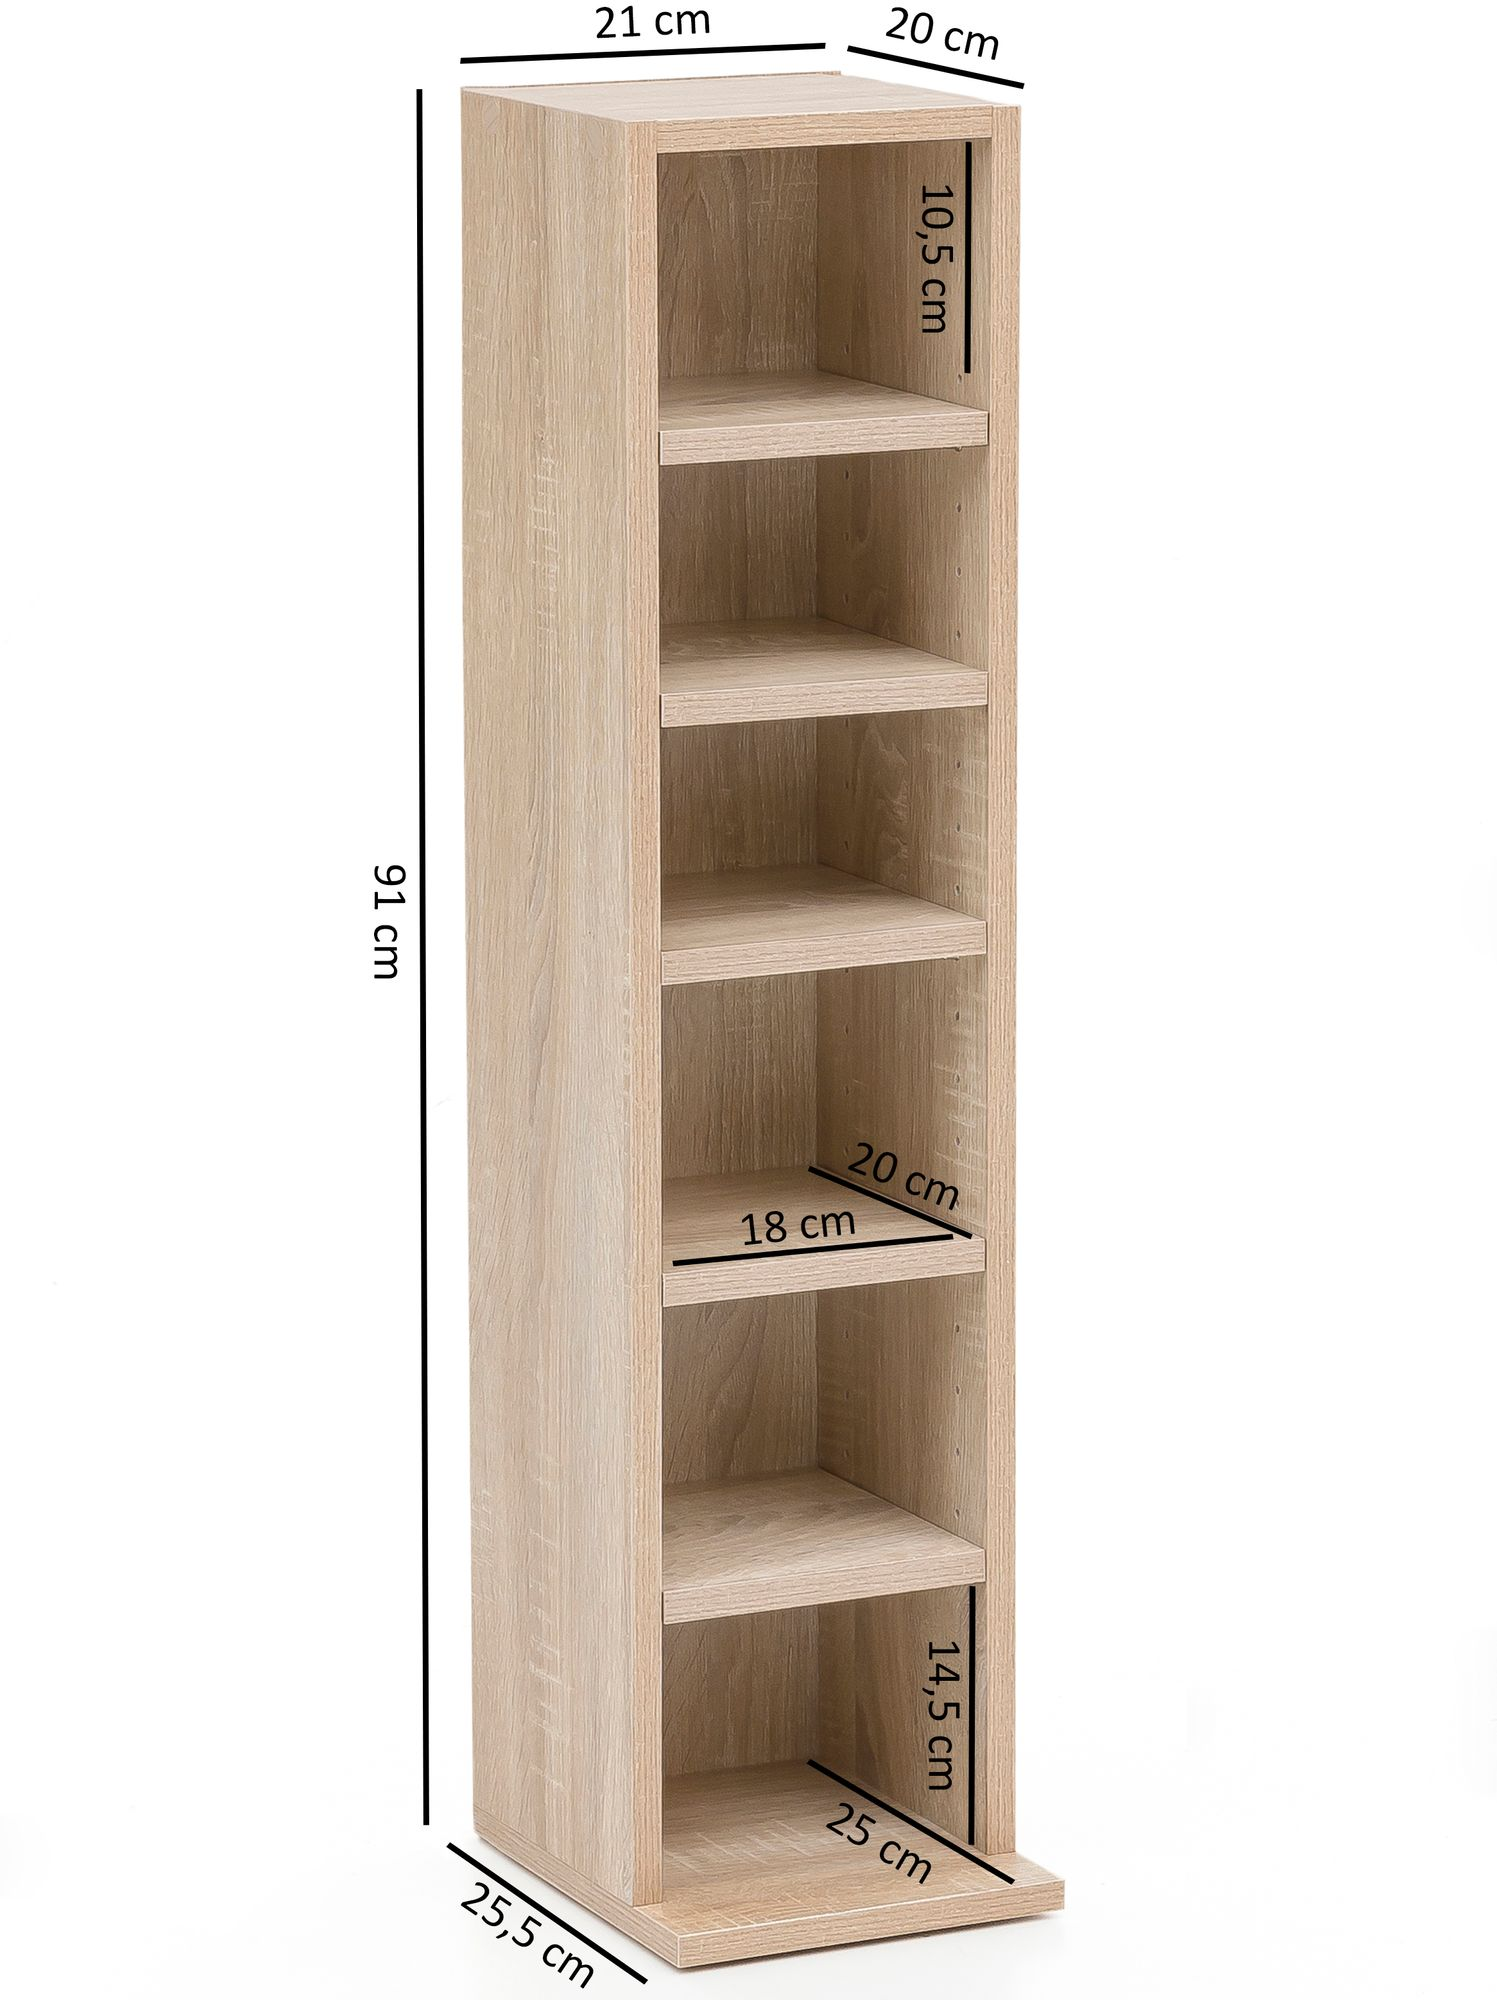 Regal 25 Holz Finebuy Design Bücherregal Sv51375 Mit 6 Fächern 21 X 91 X 25 5 Cm Standregal Holz Regal Freistehend Flur Schmales Wandregal Kinderzimmer